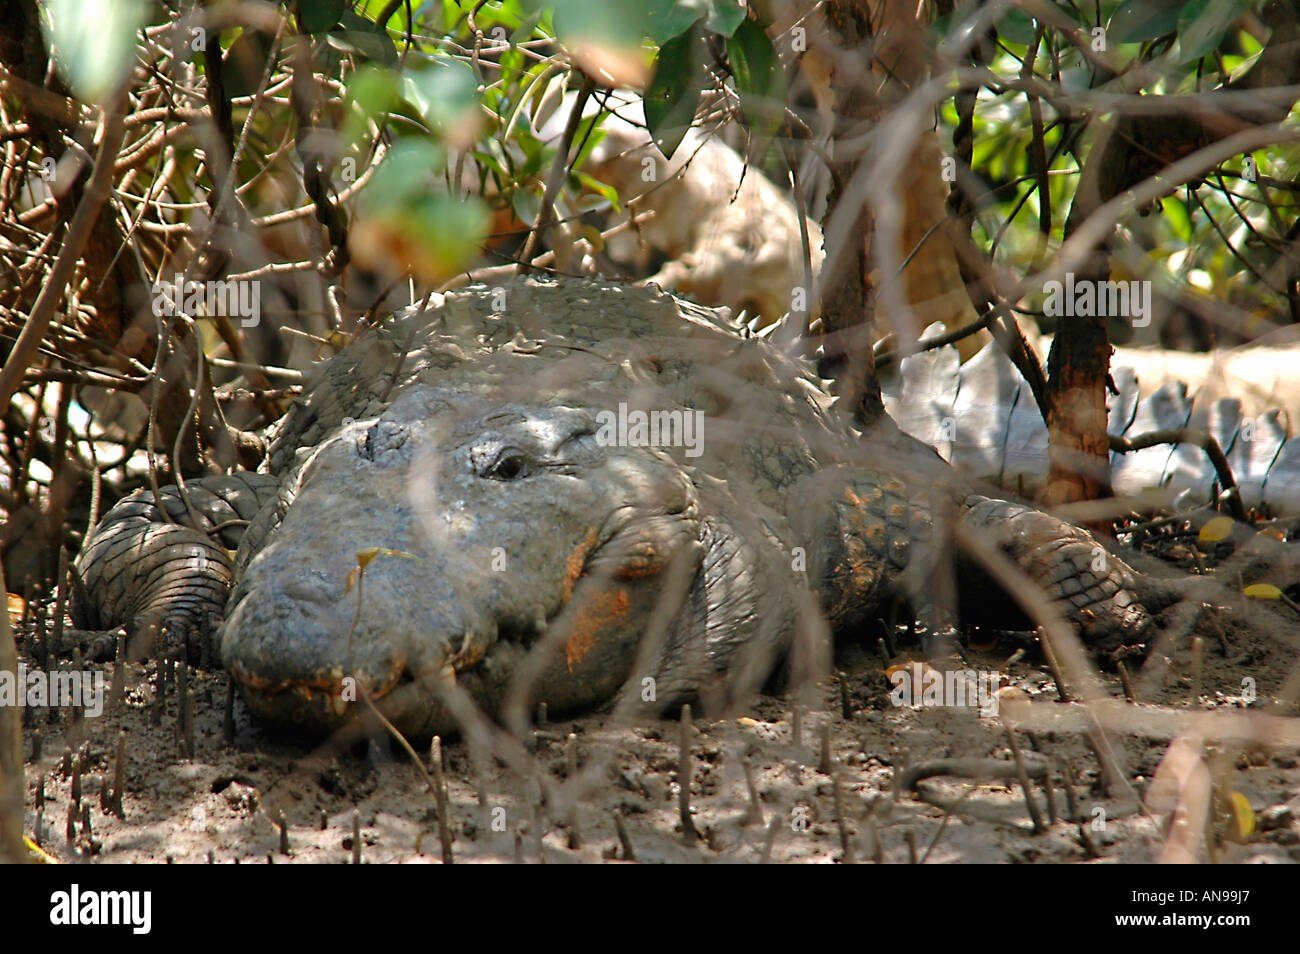 Horizontal close up of a large saltwater crocodile hiding in the undergrowth on a river bank. Stock Photo